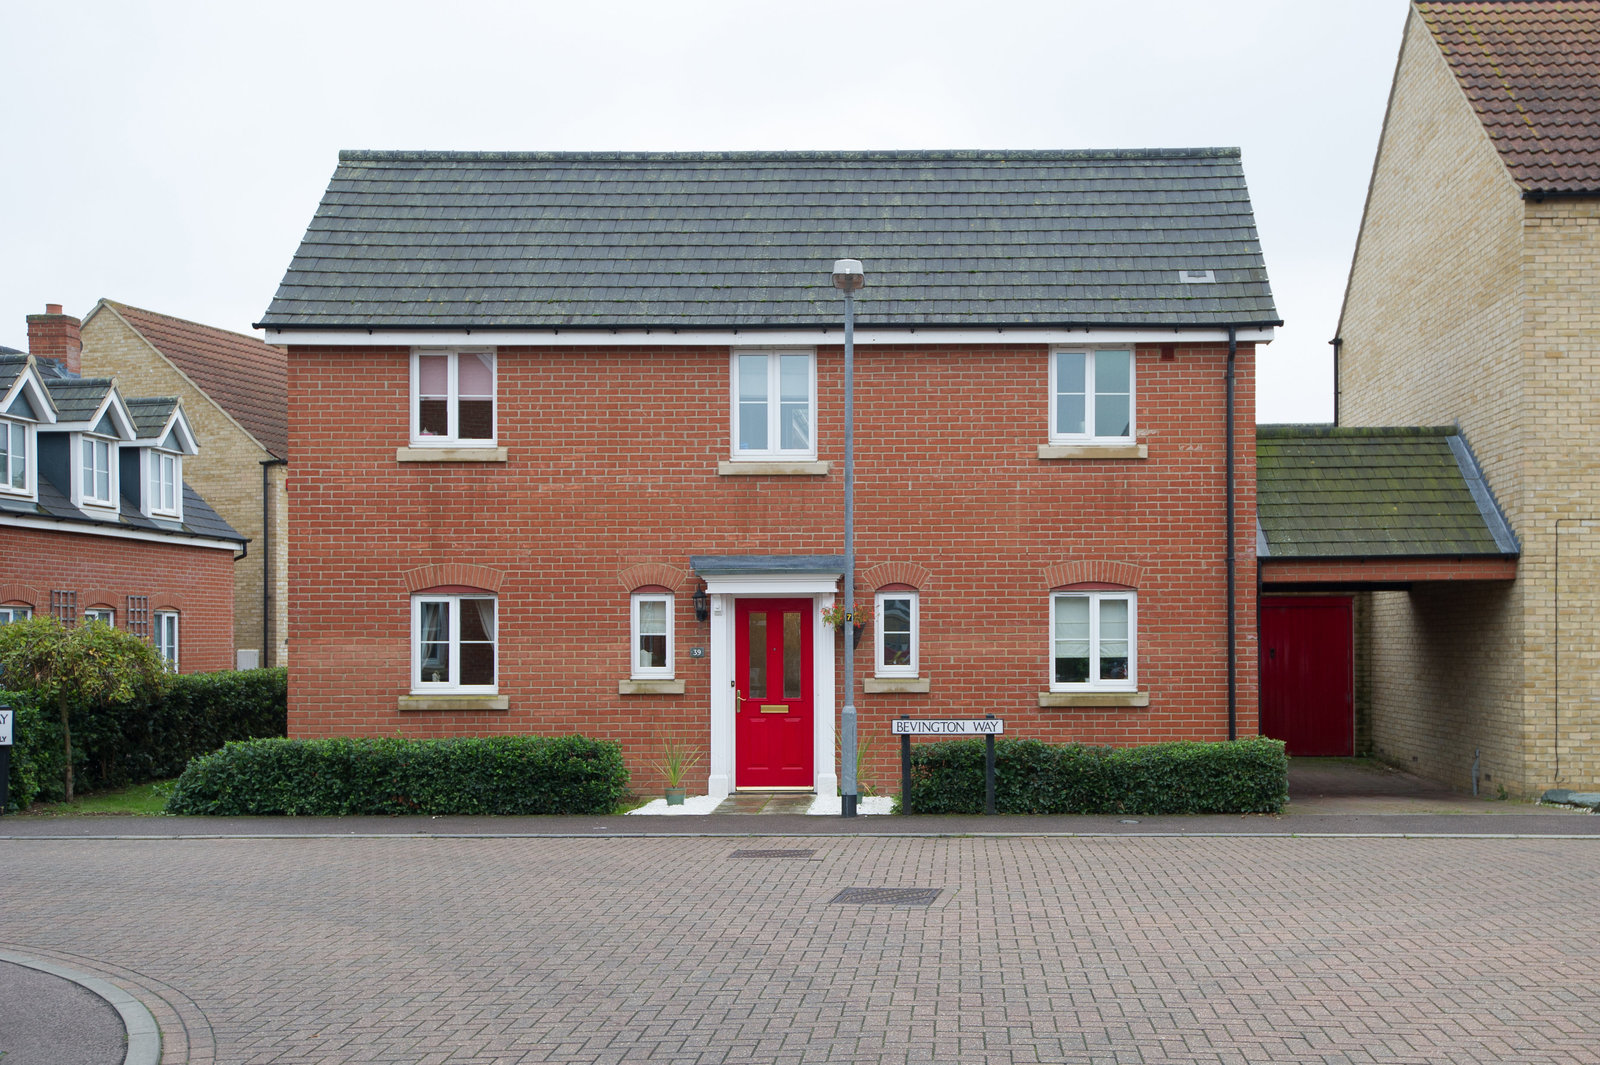 4 bed house for sale in Eynesbury, Bevington Way, PE19 2HQ, PE19